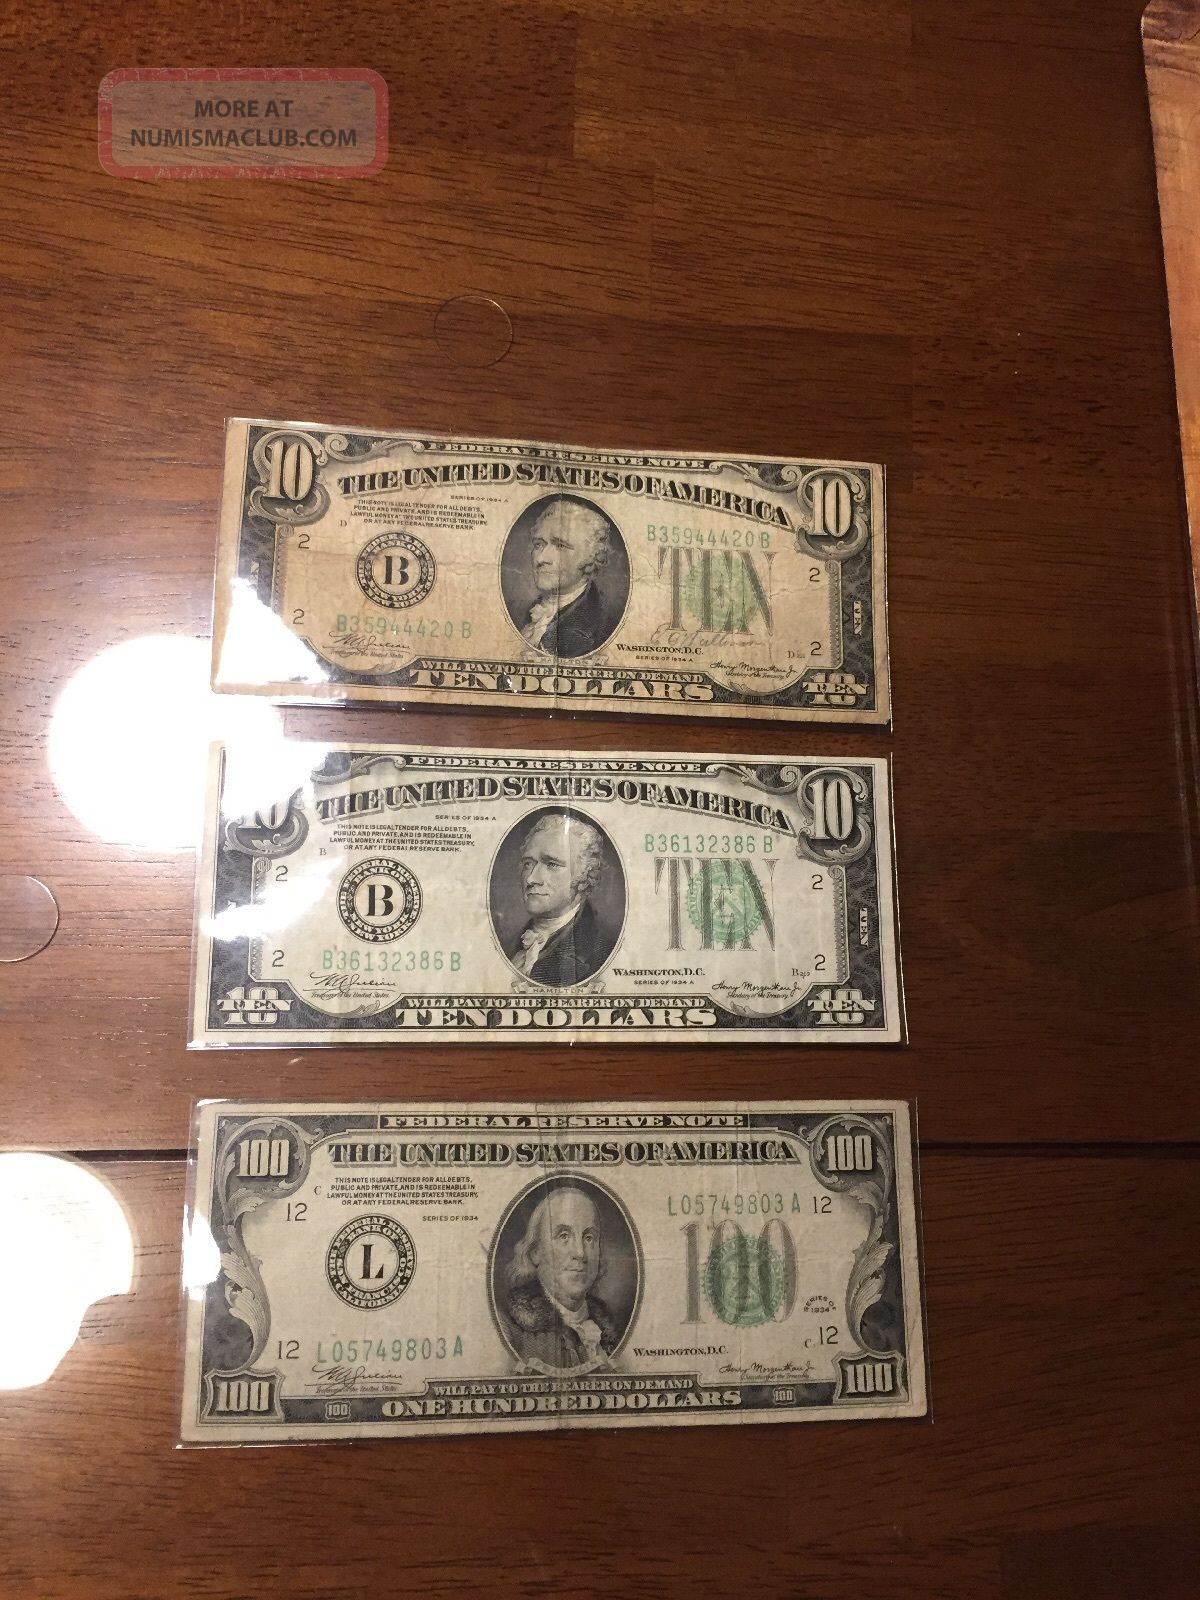 100 1 Hundred Dollar Bill 1934 Benjamin Franklin & 2x 1934 $10 Federal Reserve N Small Size Notes photo